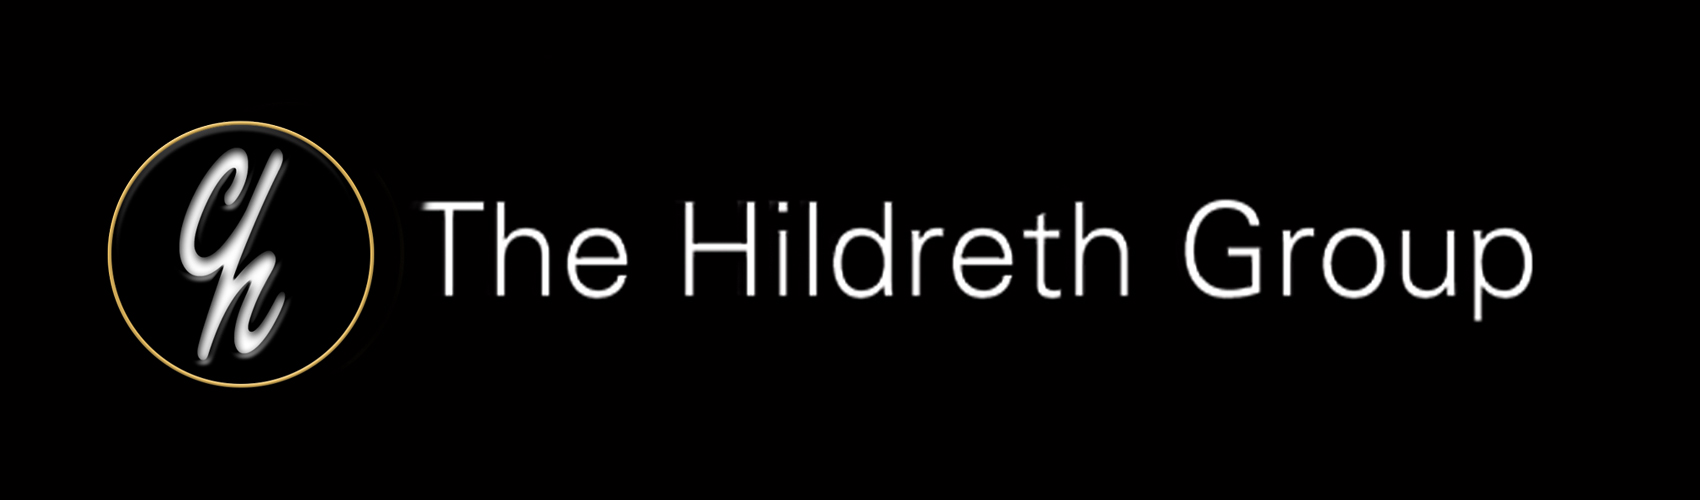 The Hildreth Group